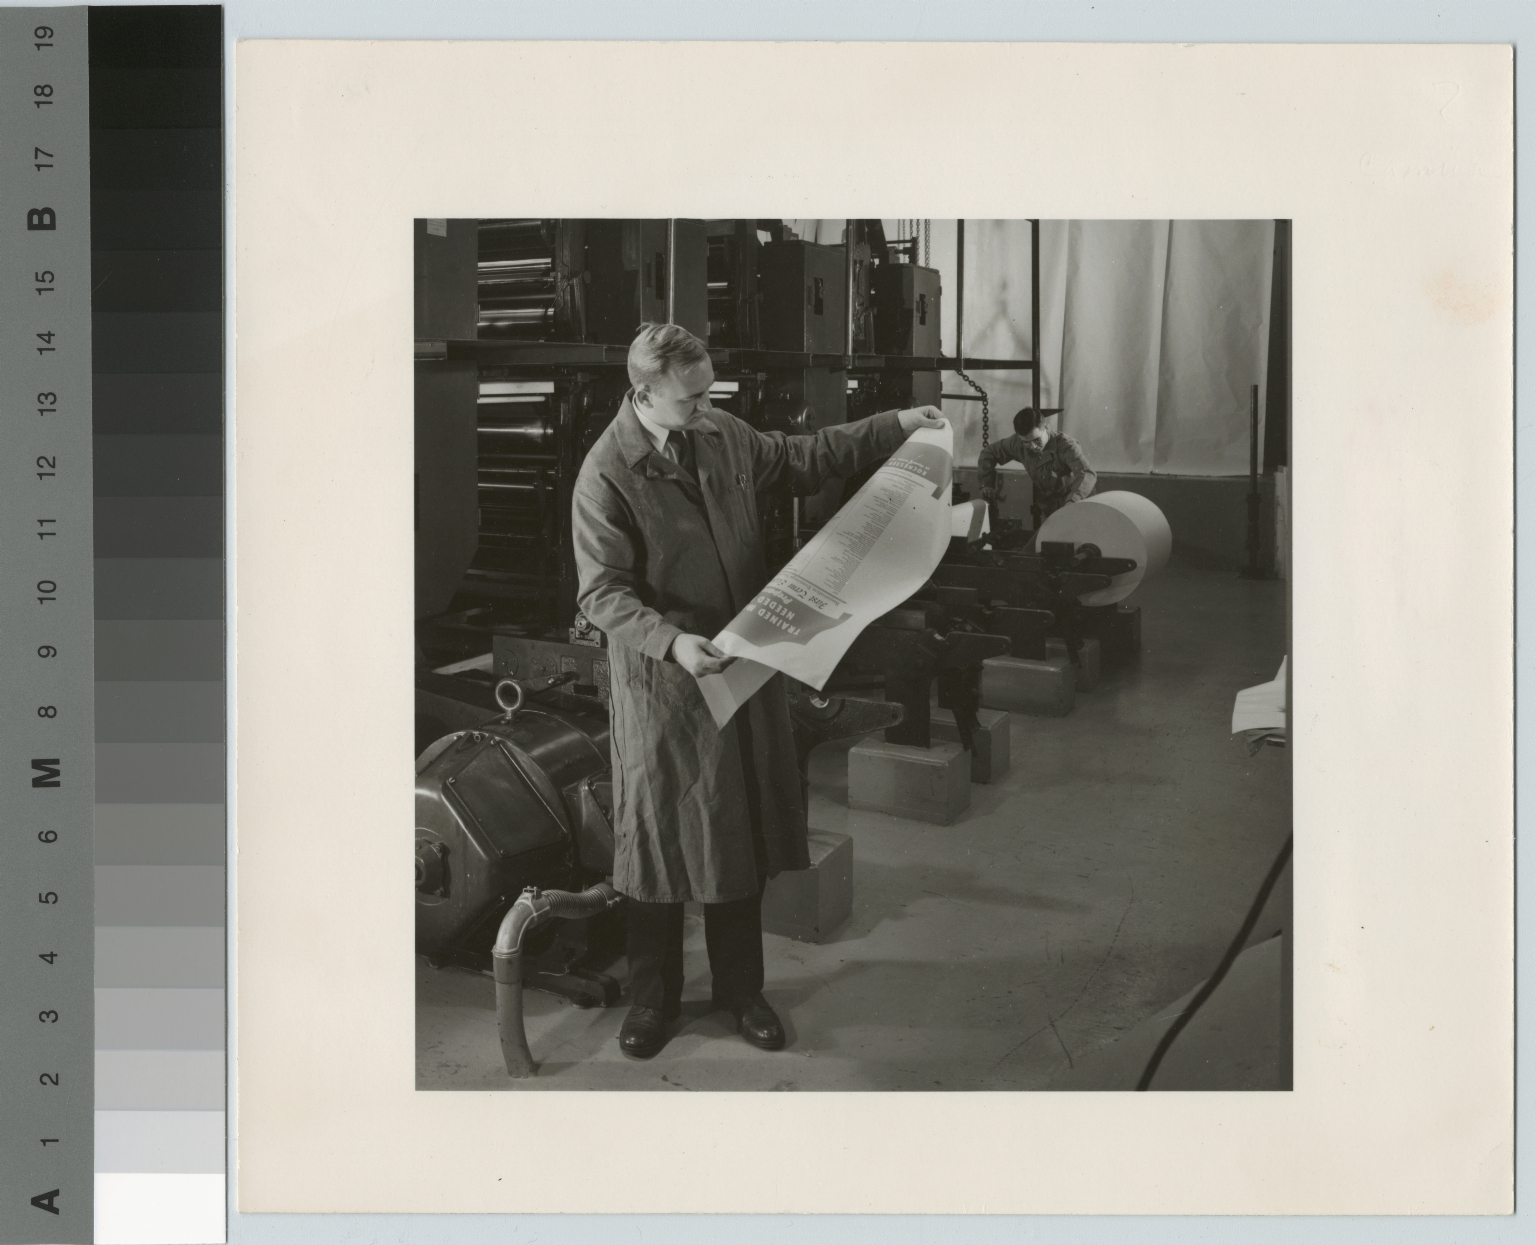 Technician examining poster from printing press, Rochester Institute of Technology, [1950-1959]